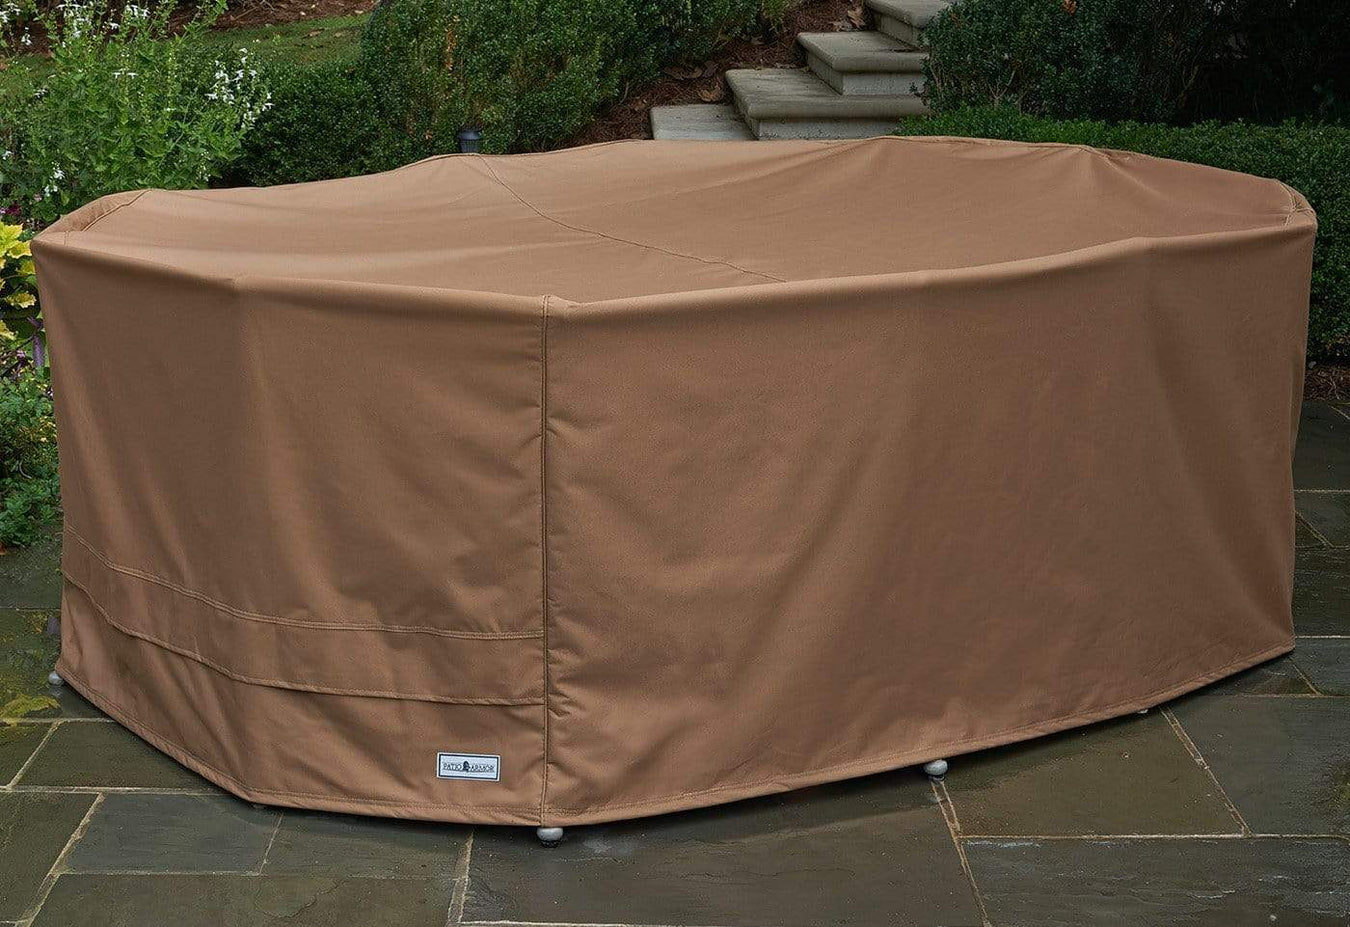 Patio Armor Table Cover Outdoor Covers Patio Table